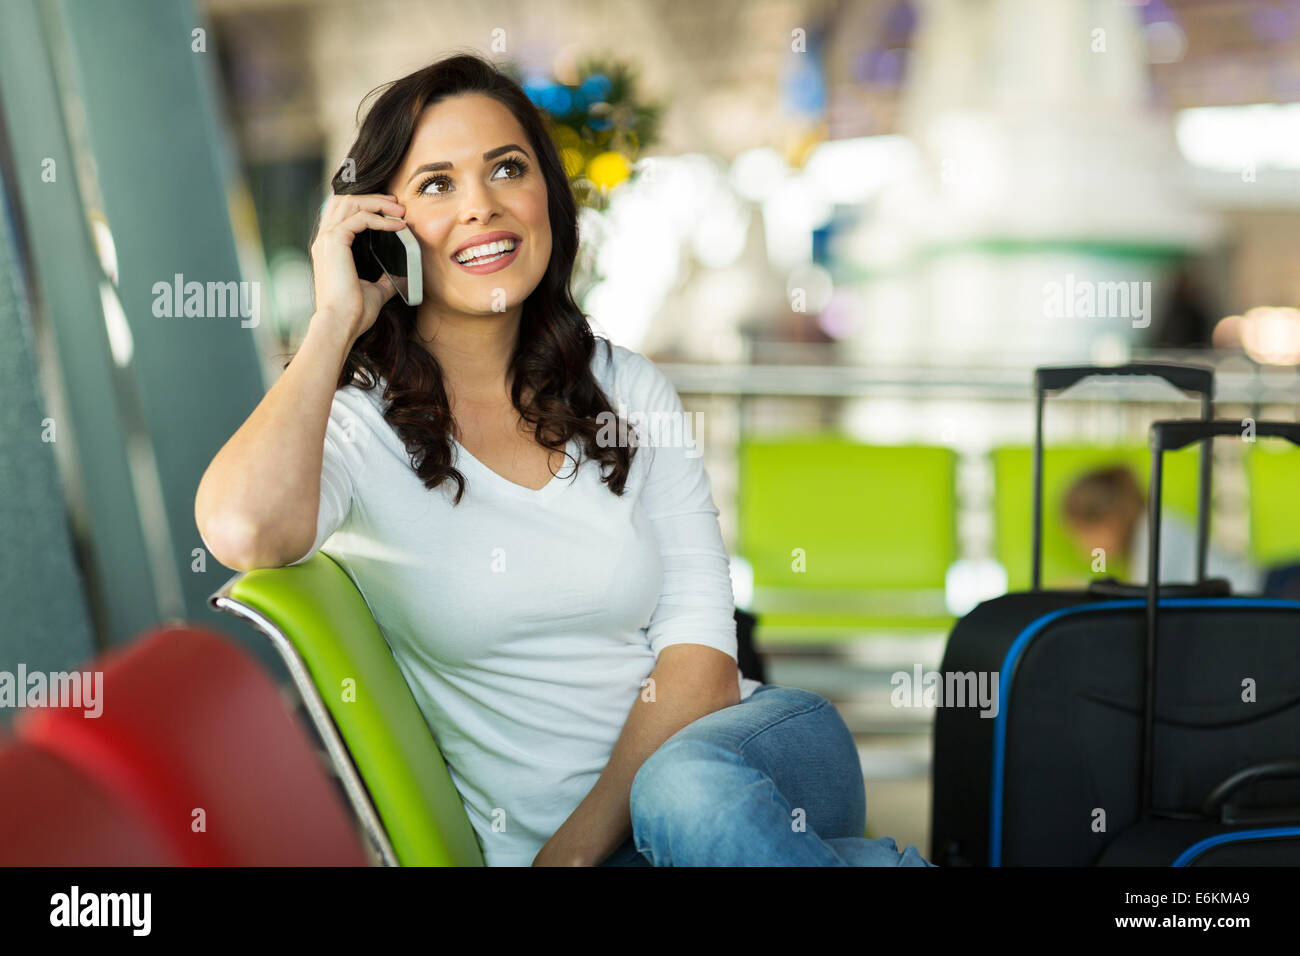 pretty traveller making a phone call at airport - Stock Image